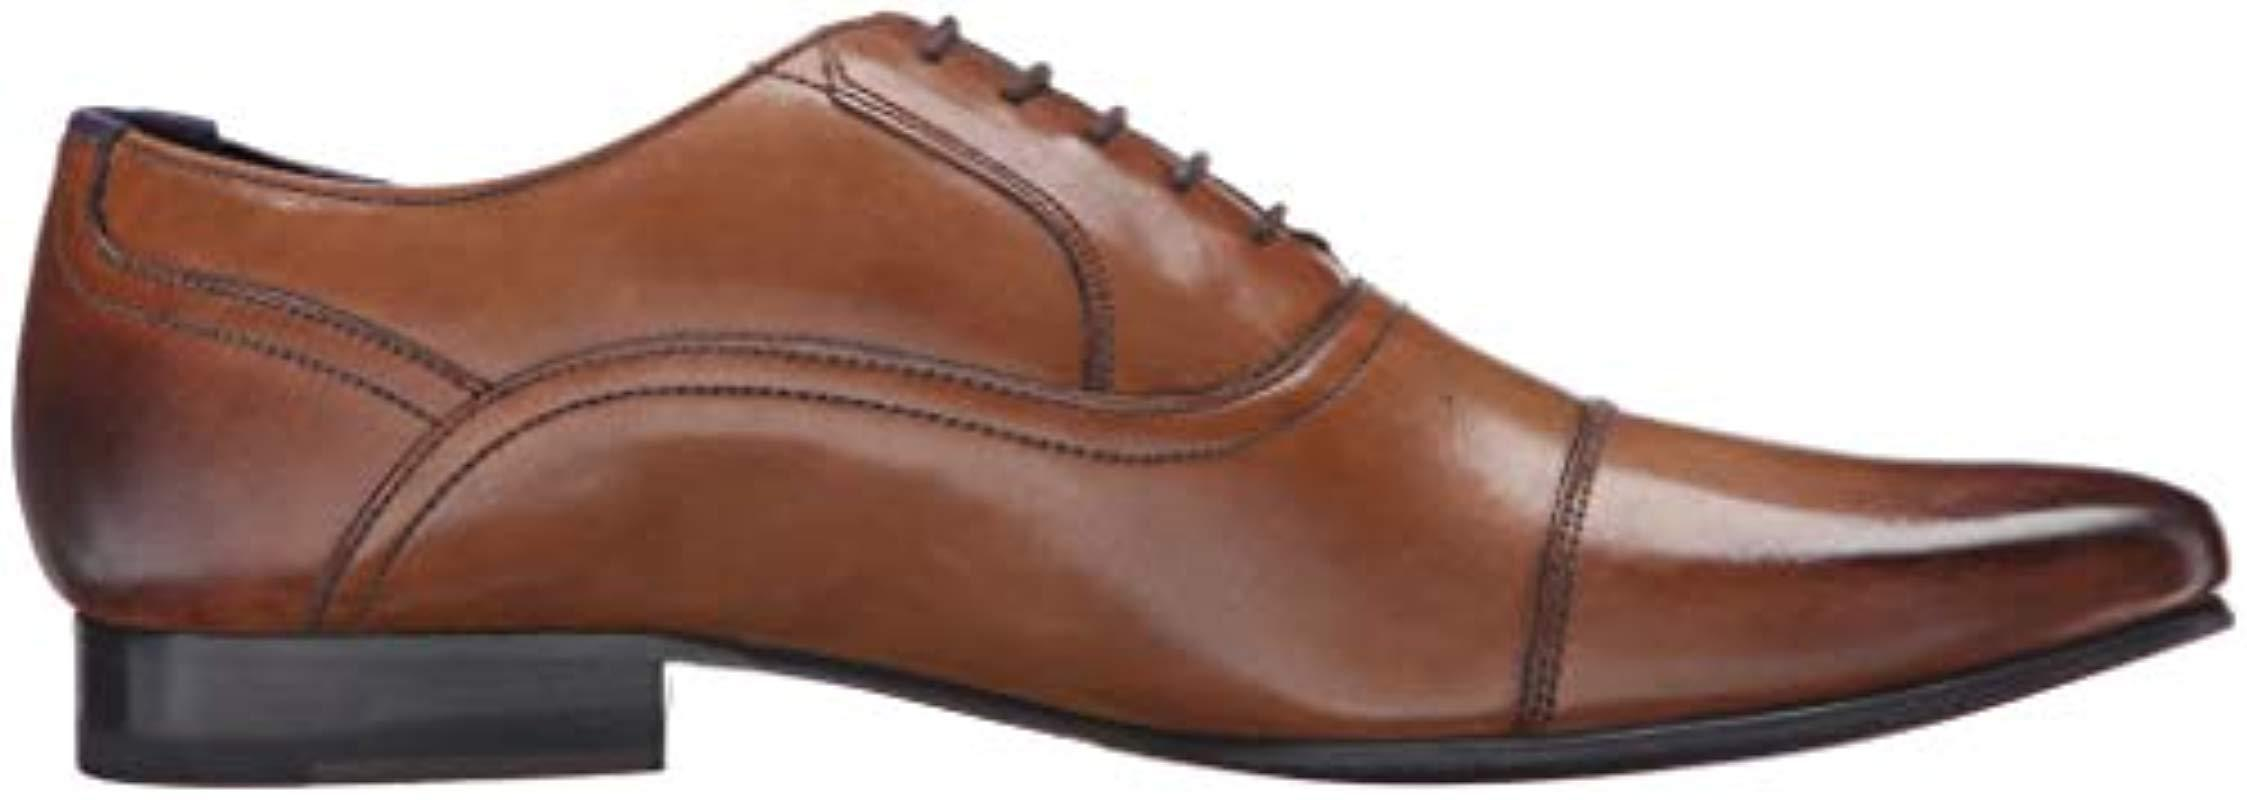 Ted Baker Leather Rogrr 2 in Tan (Brown